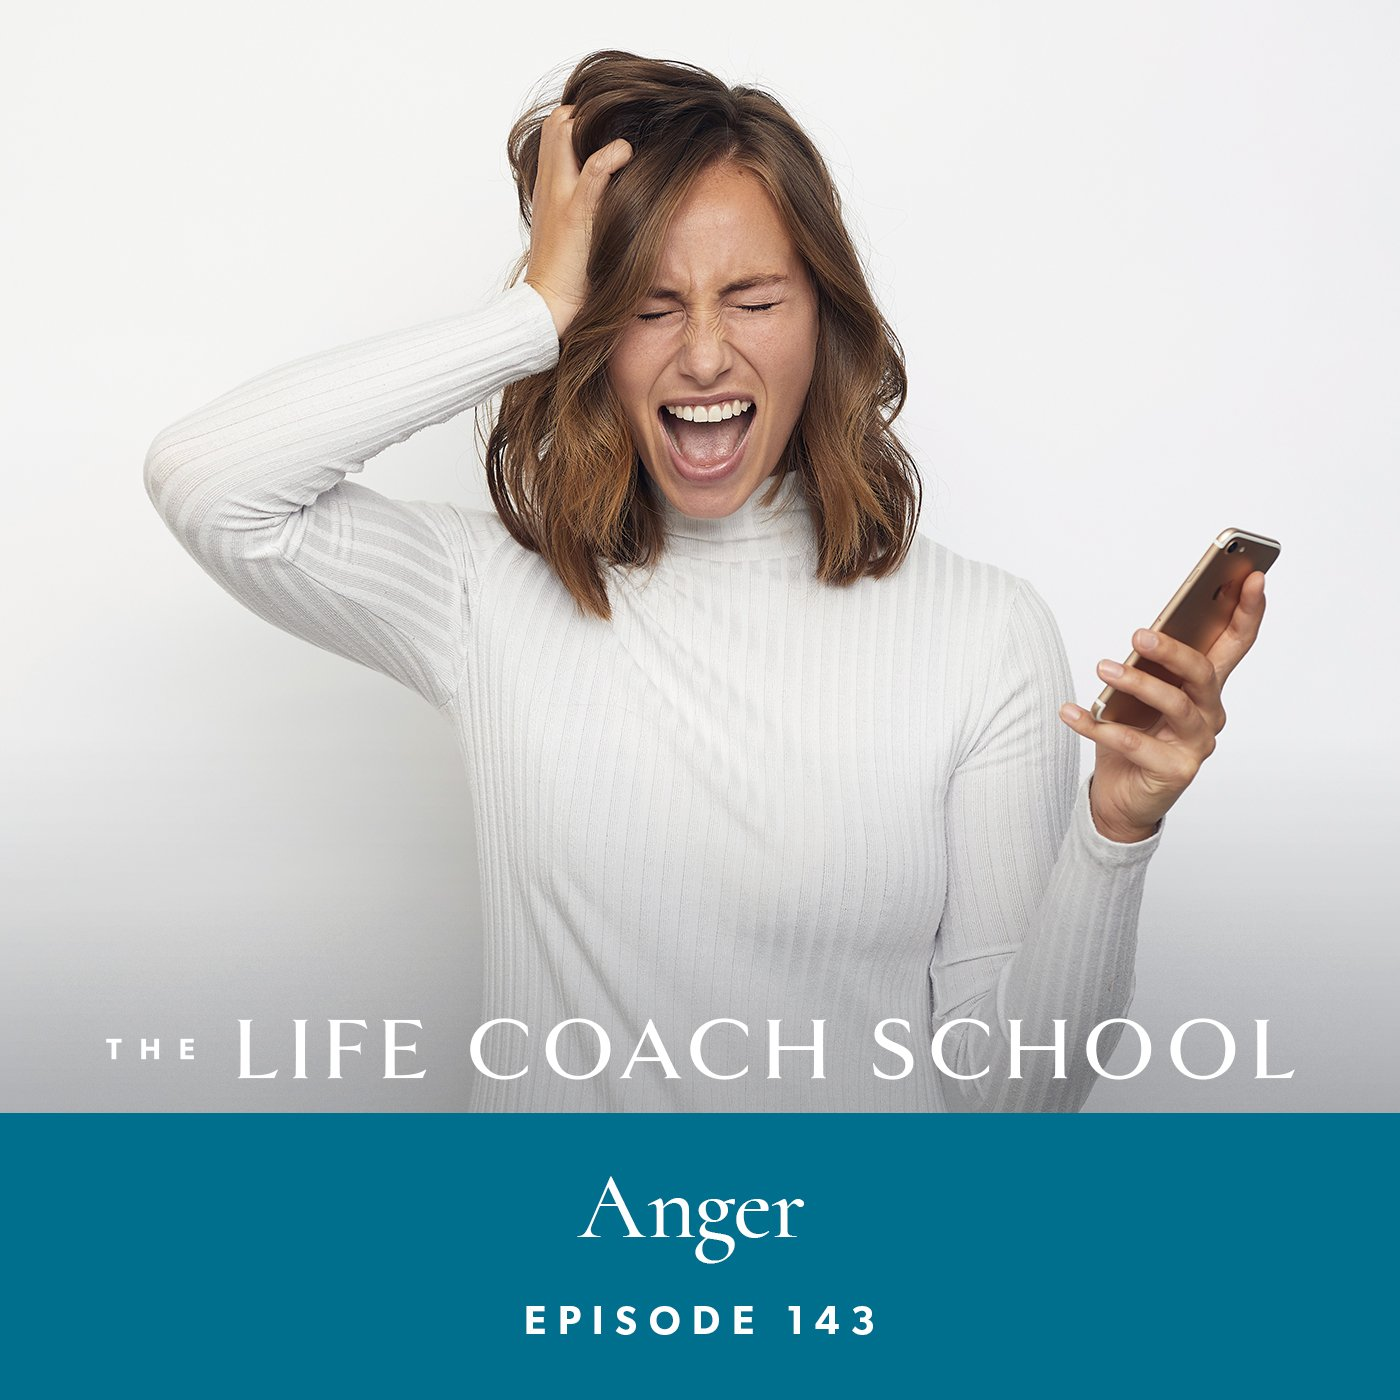 The Life Coach School Podcast with Brooke Castillo | Episode 143 | Anger